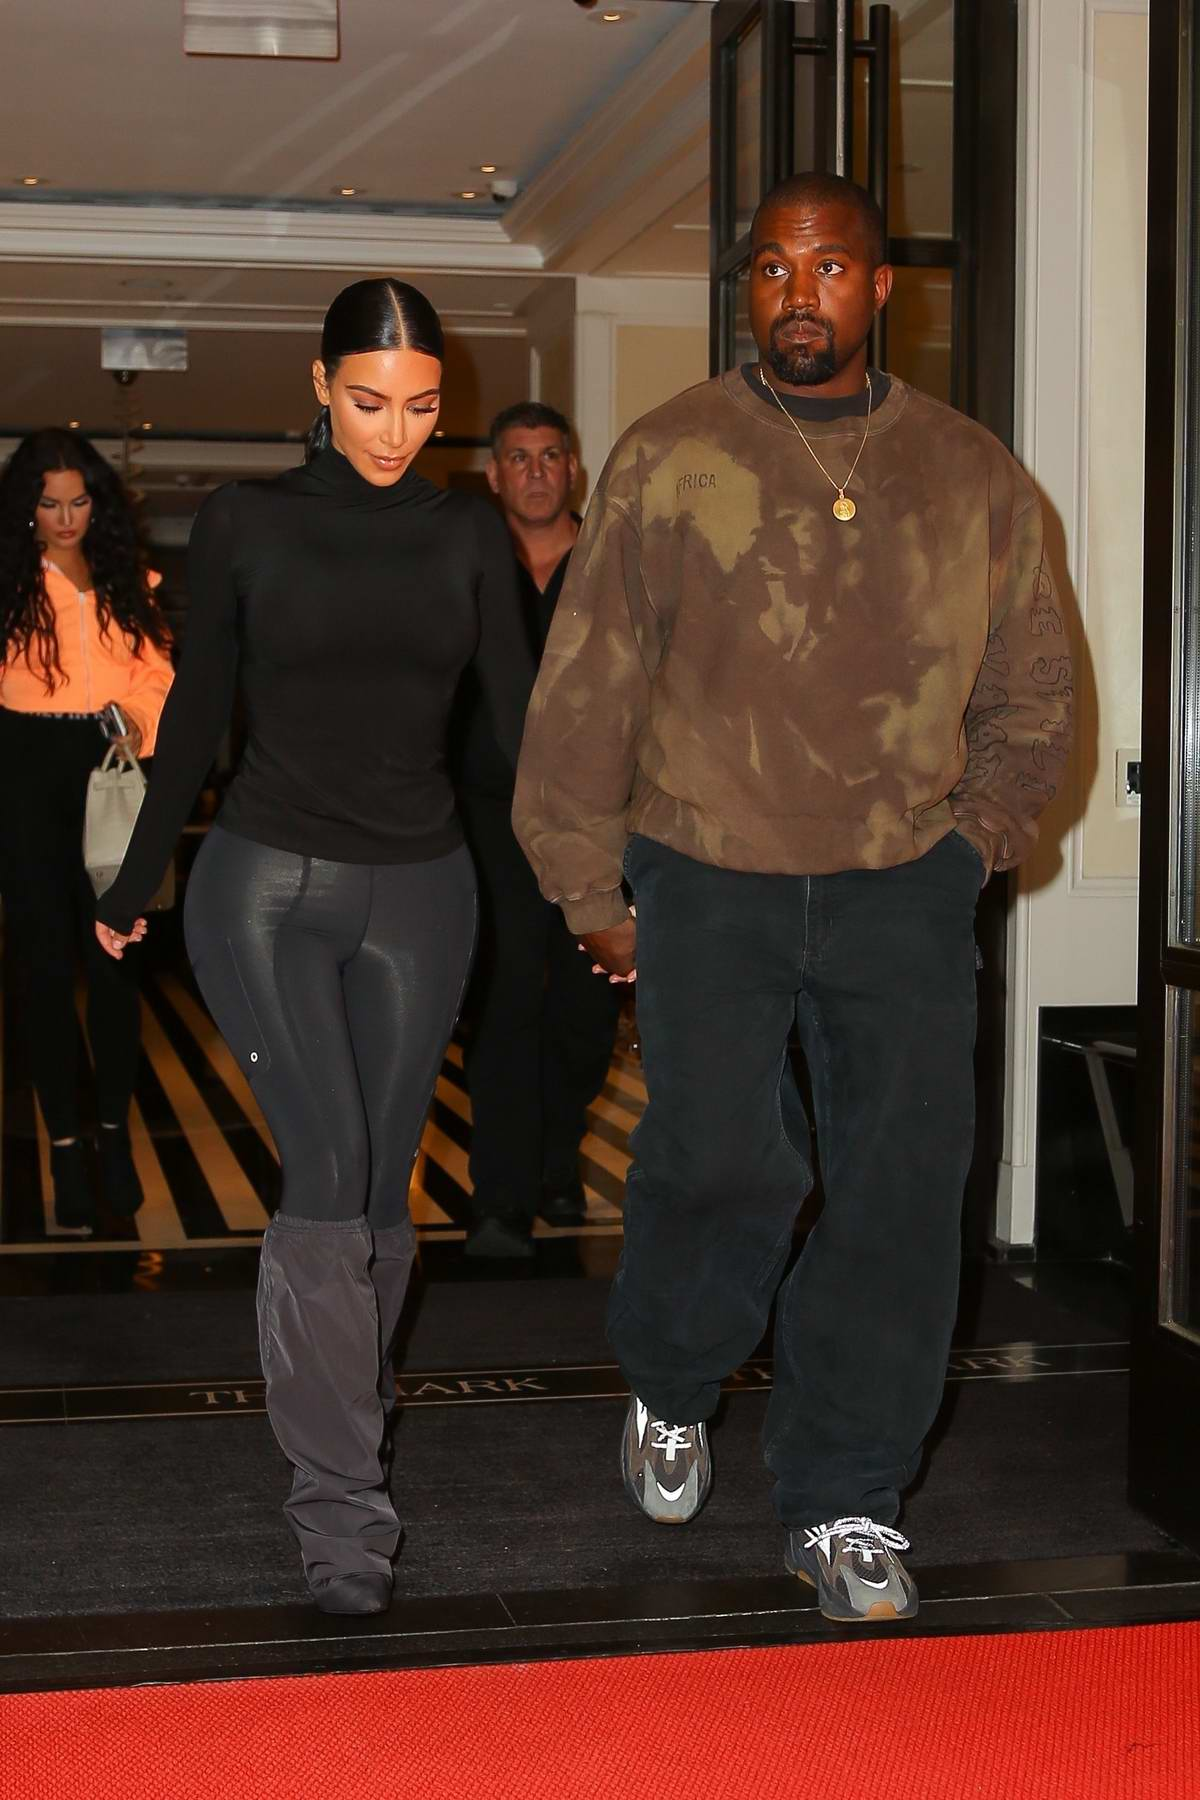 78e67e1f74ca kim kardashian hold hands with kanye west as they exit their hotel in new  york city-070519_6